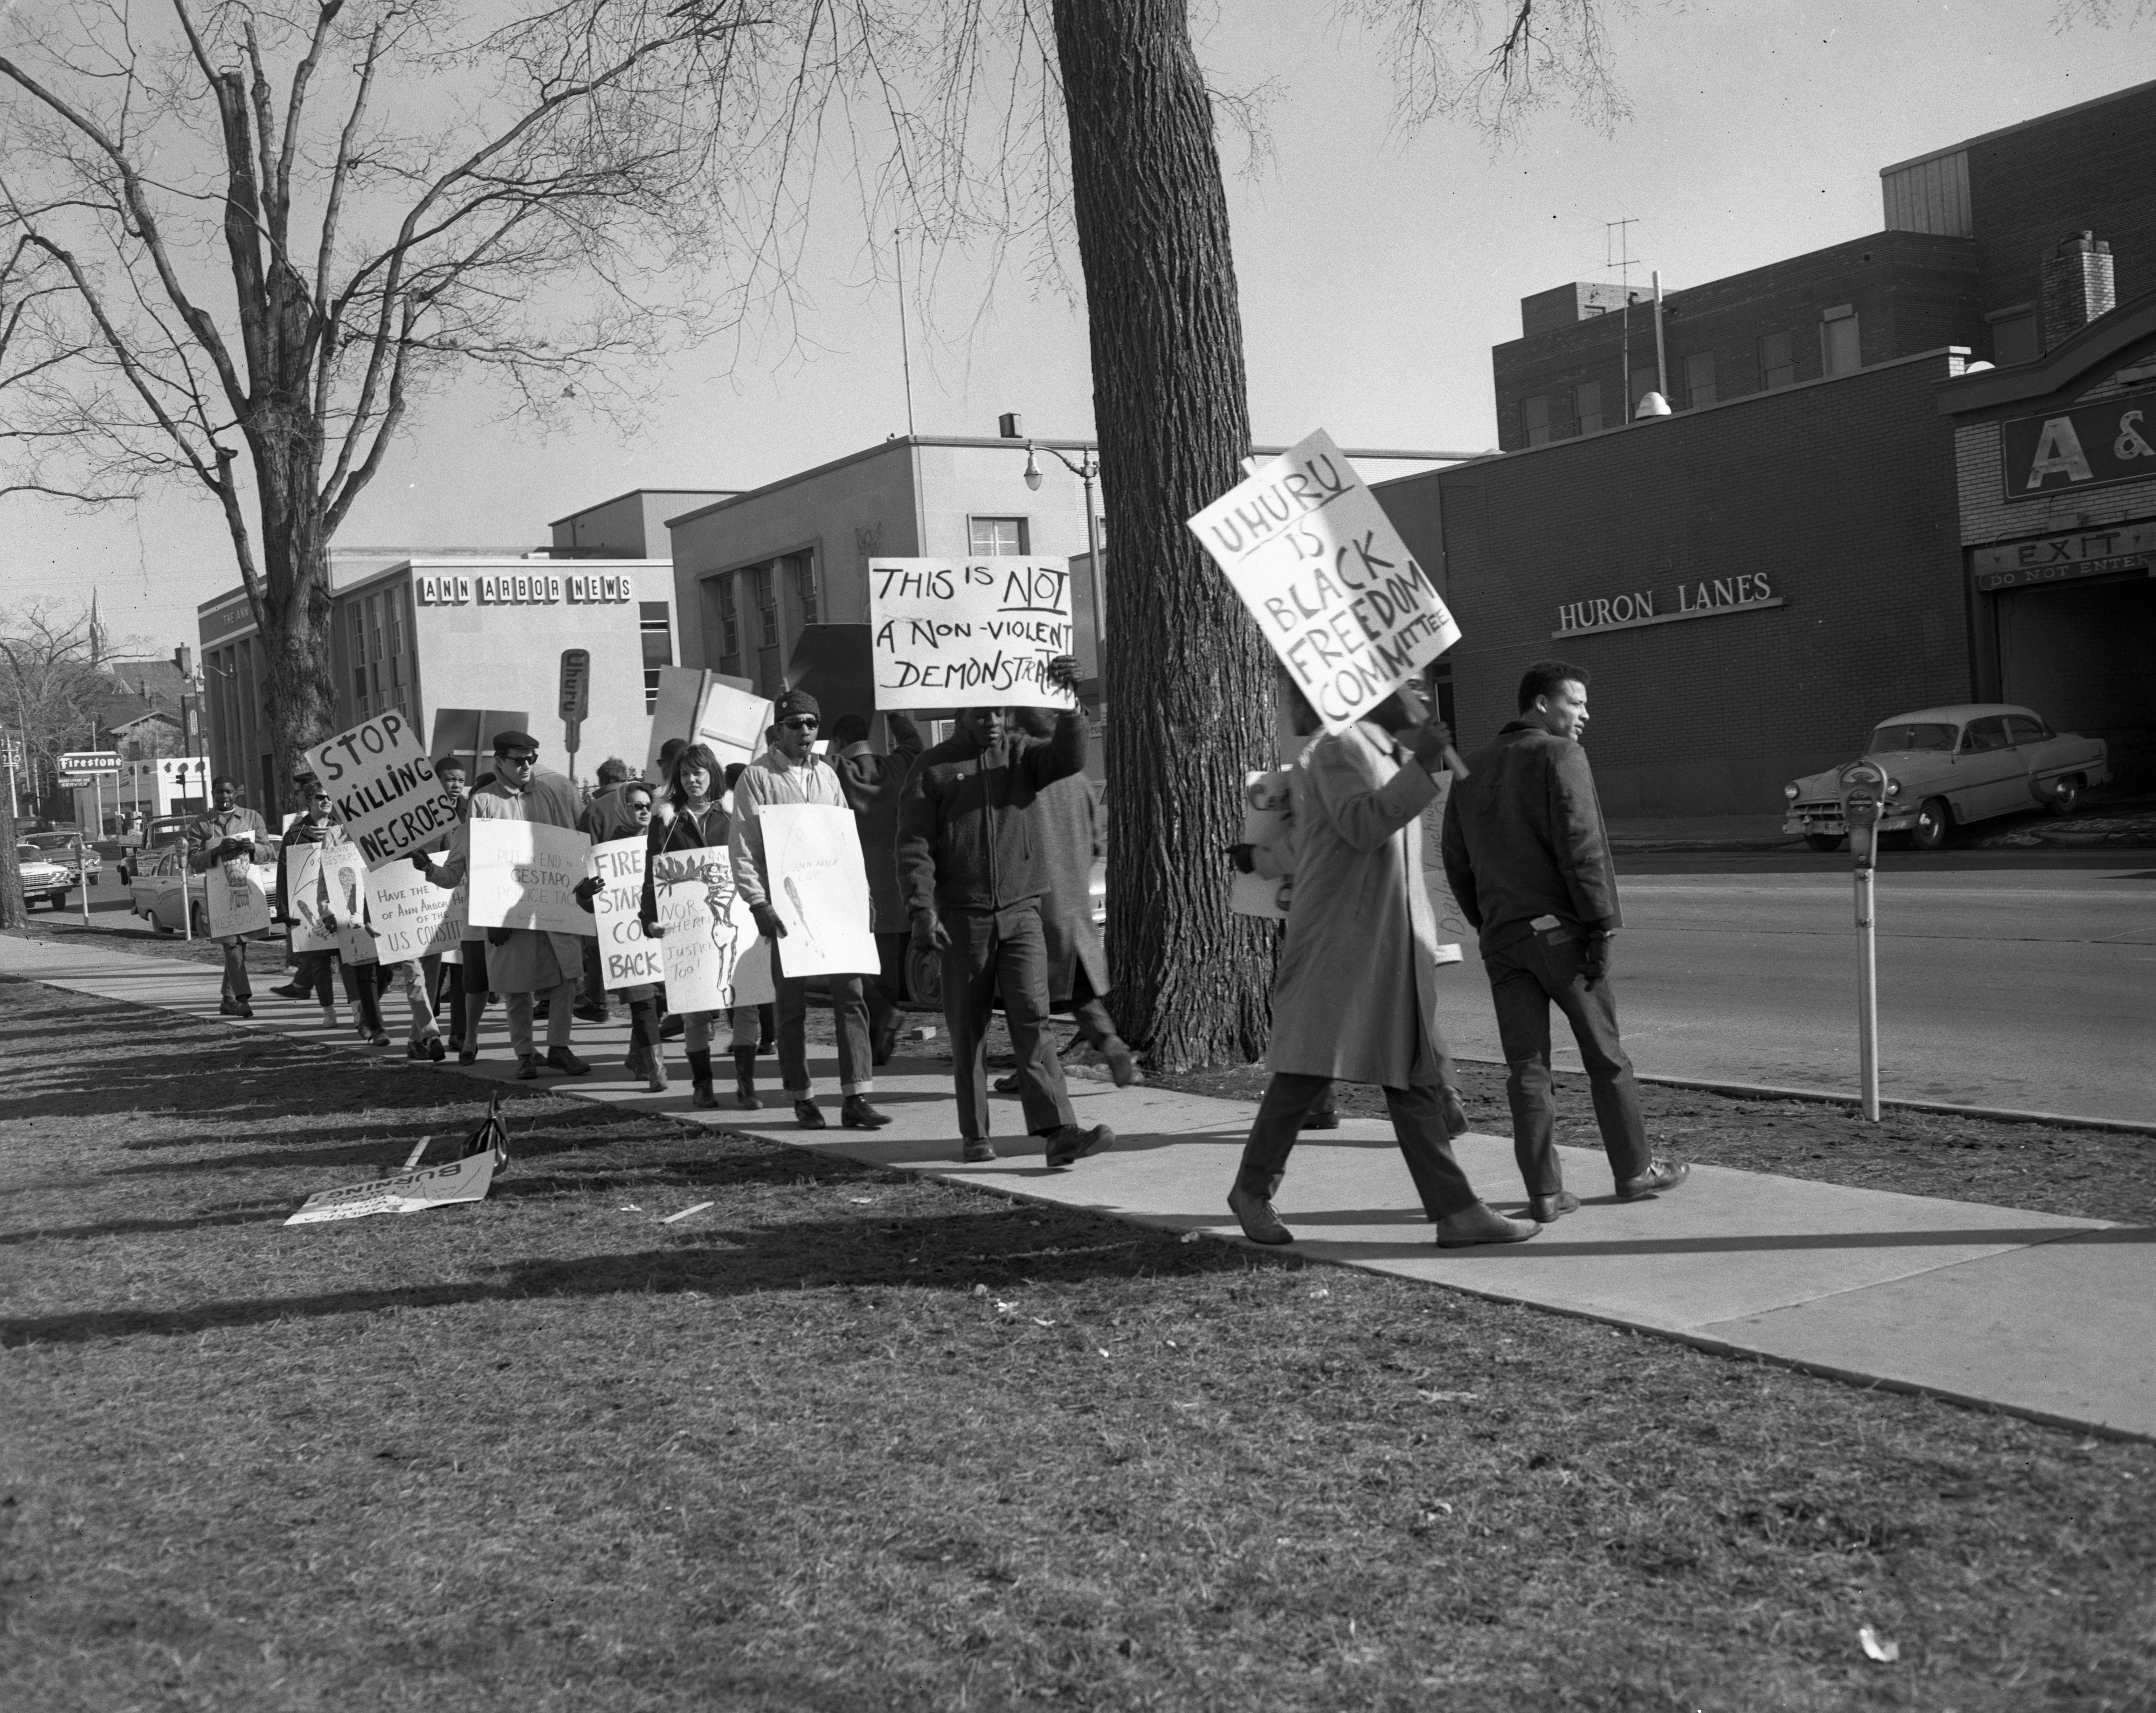 Civil Rights Protesters, February 1964 image